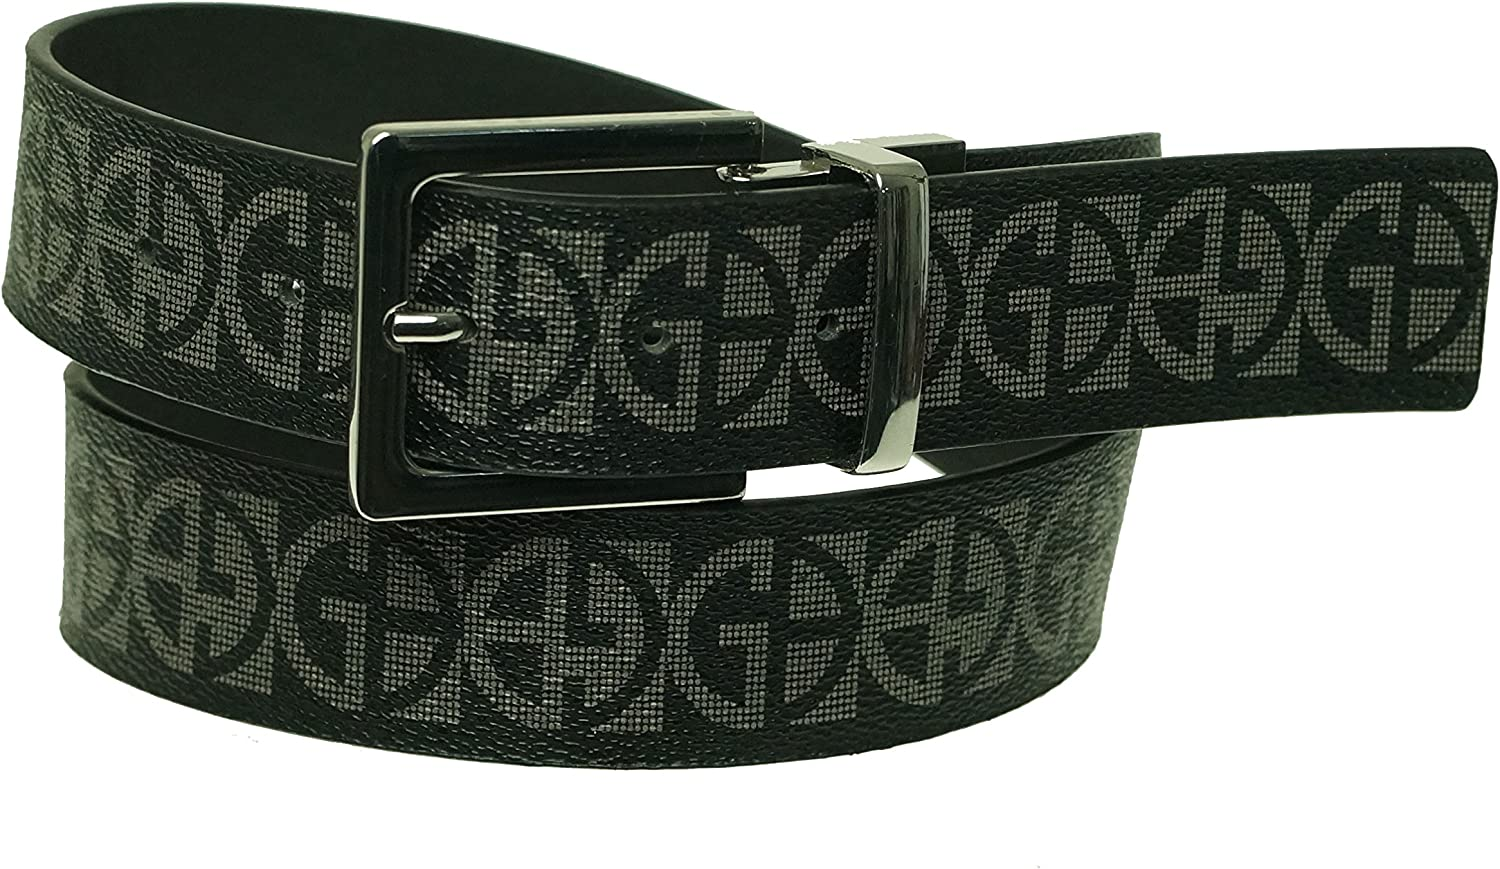 Giani Bernini Women's Reversible Belt Faux Leather Black Medium